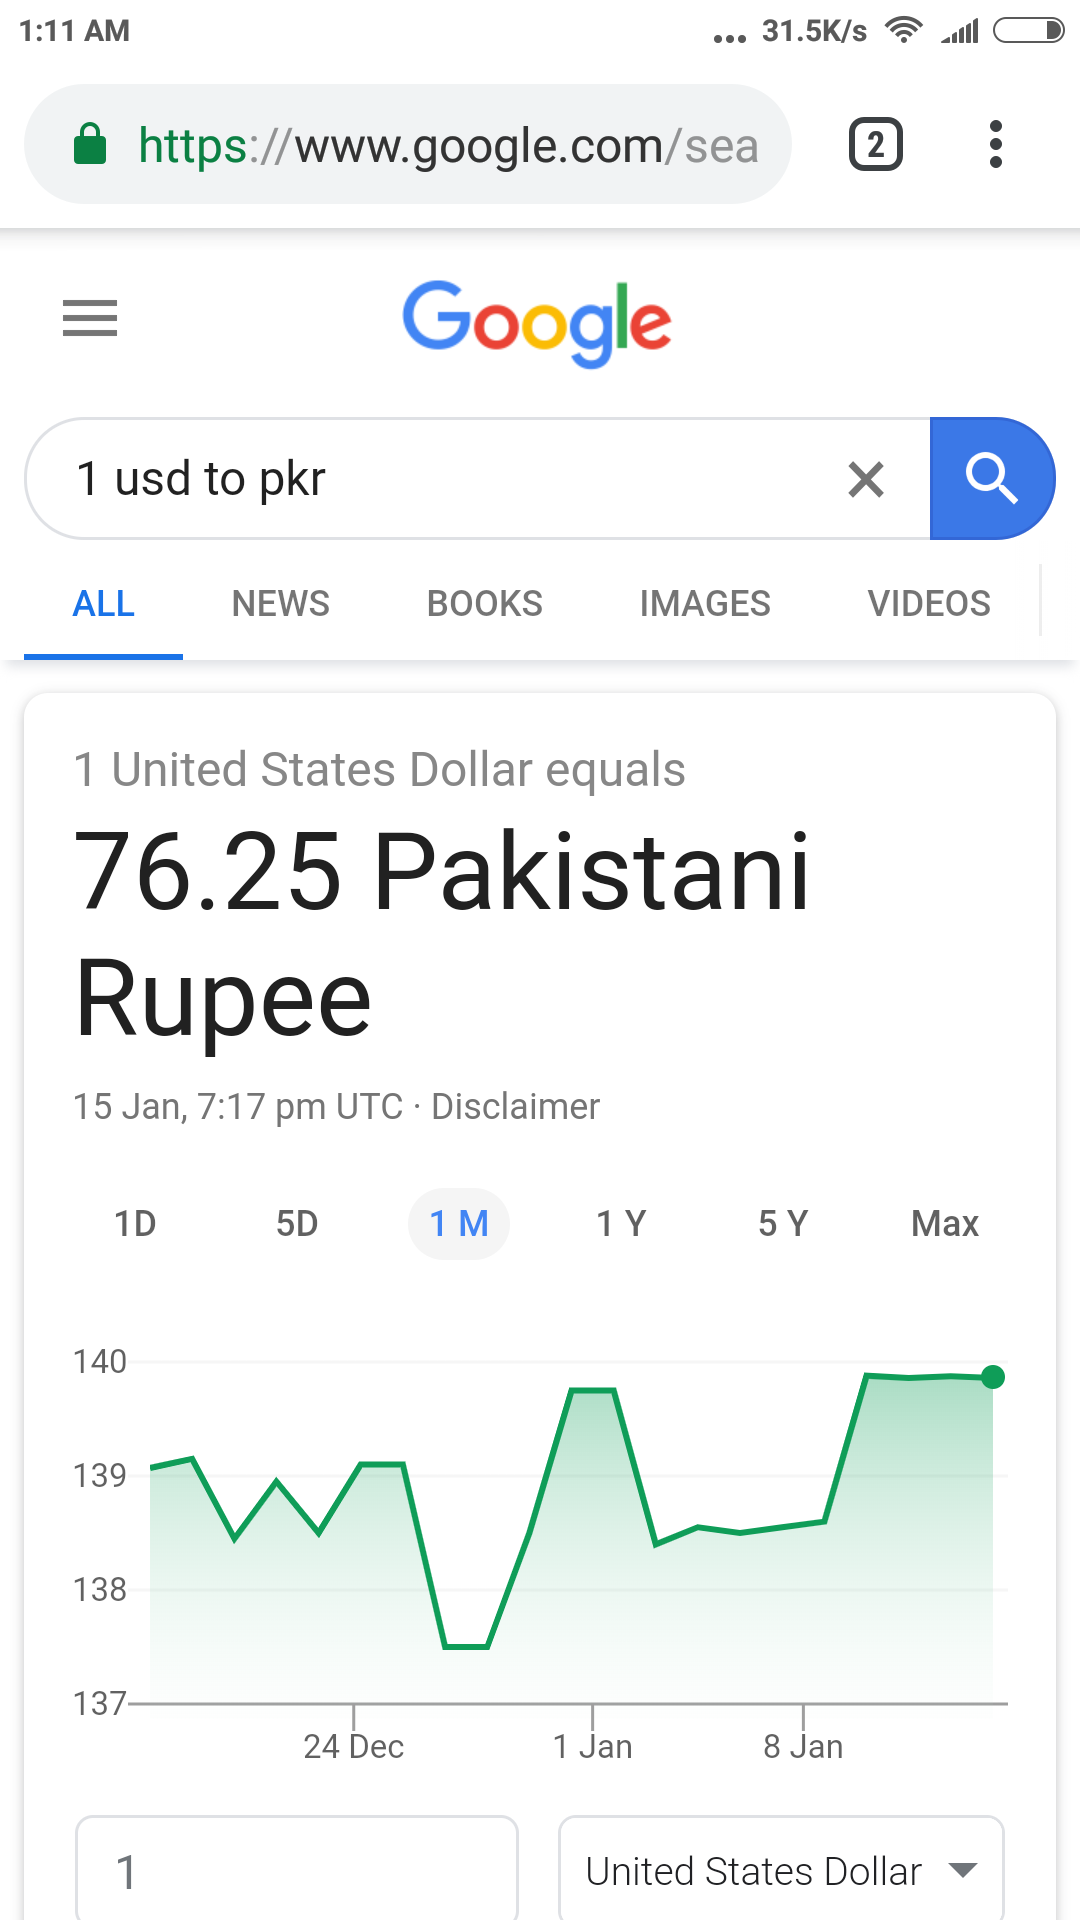 1 USD is equals to 76.25 Pakistani rupees according to Google: is it a bug?